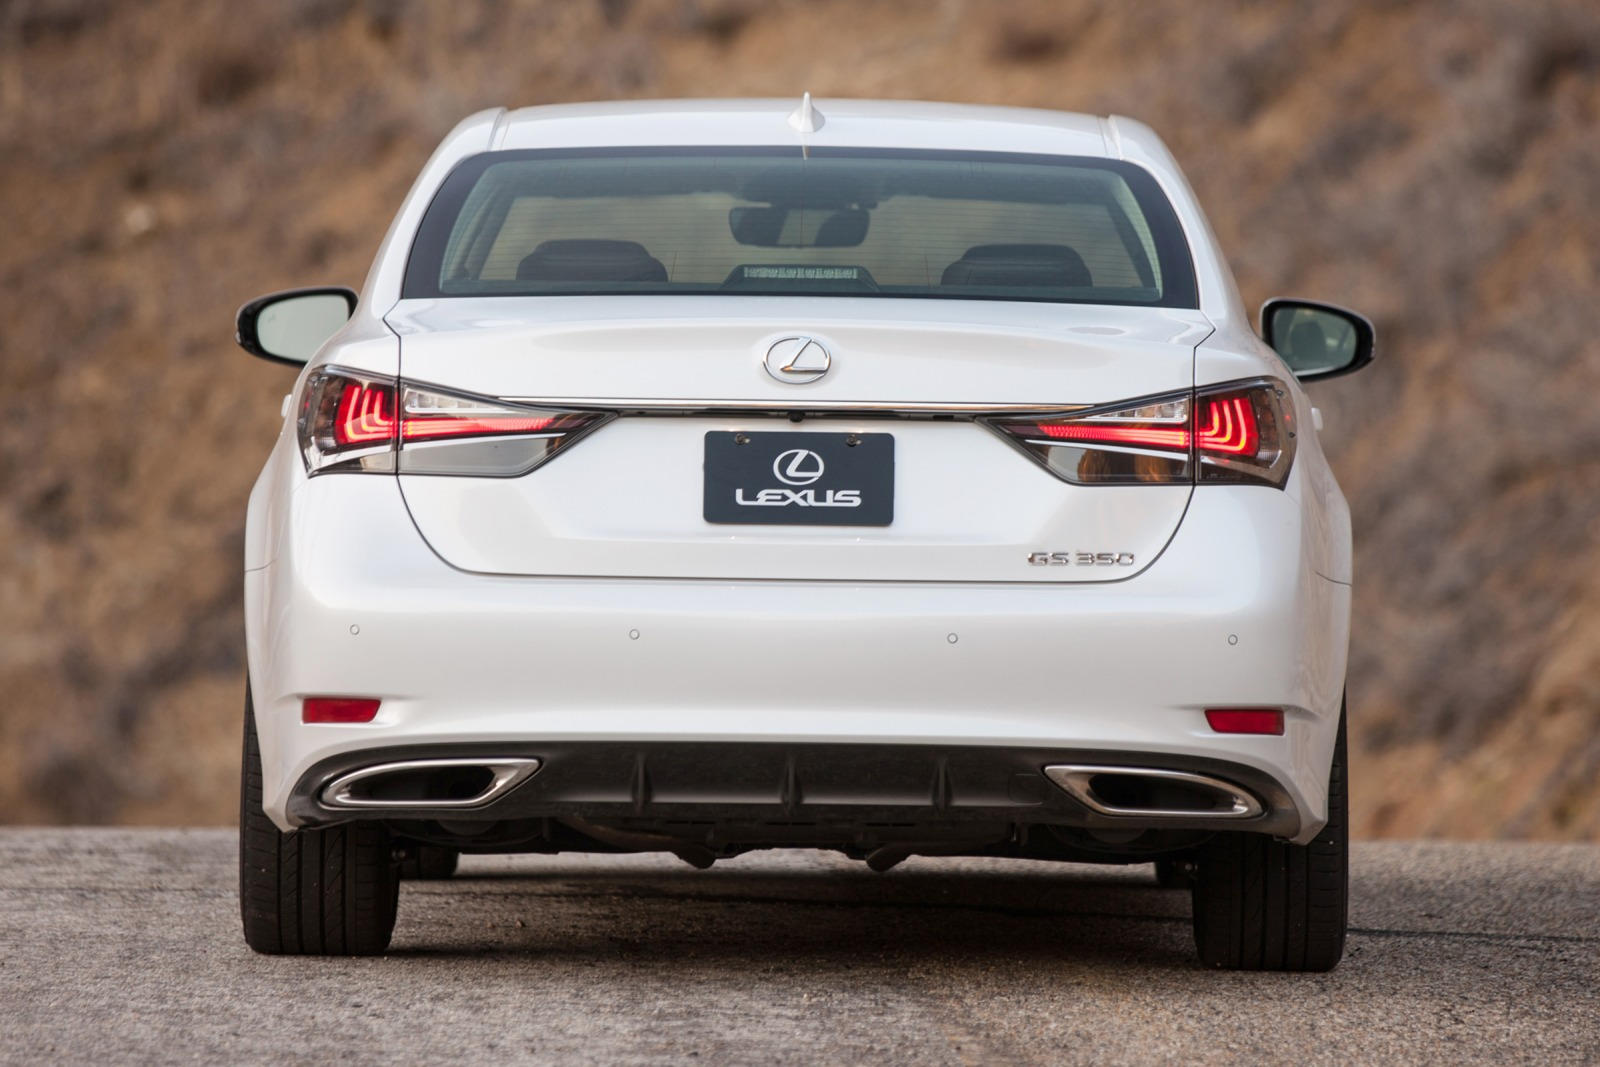 2019 Lexus GS 350 Rear View